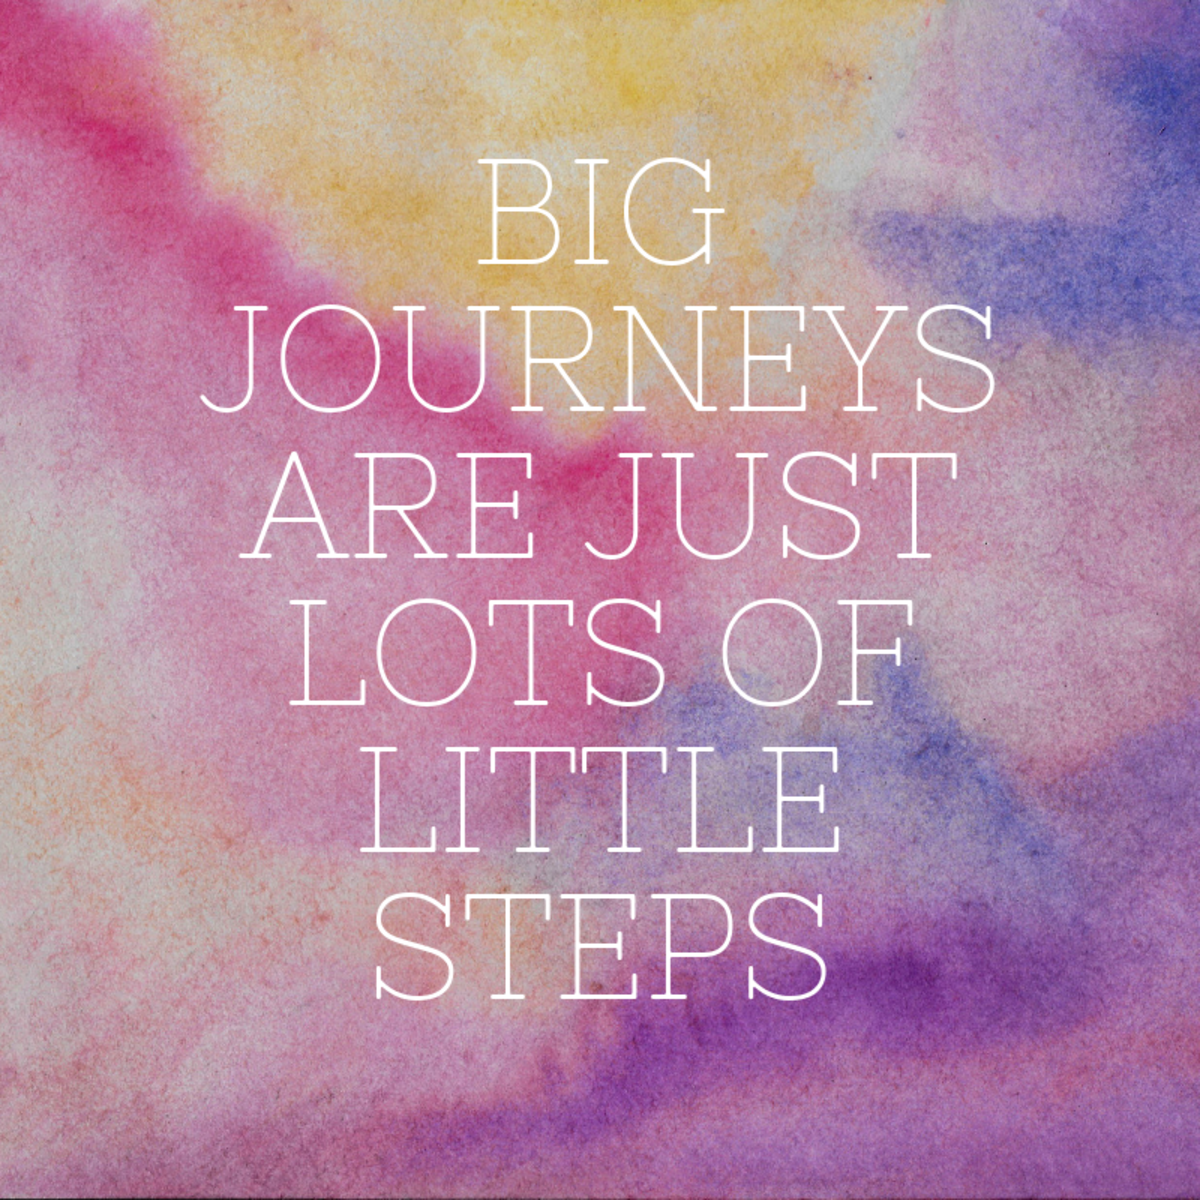 Big journeys are just lots of little steps